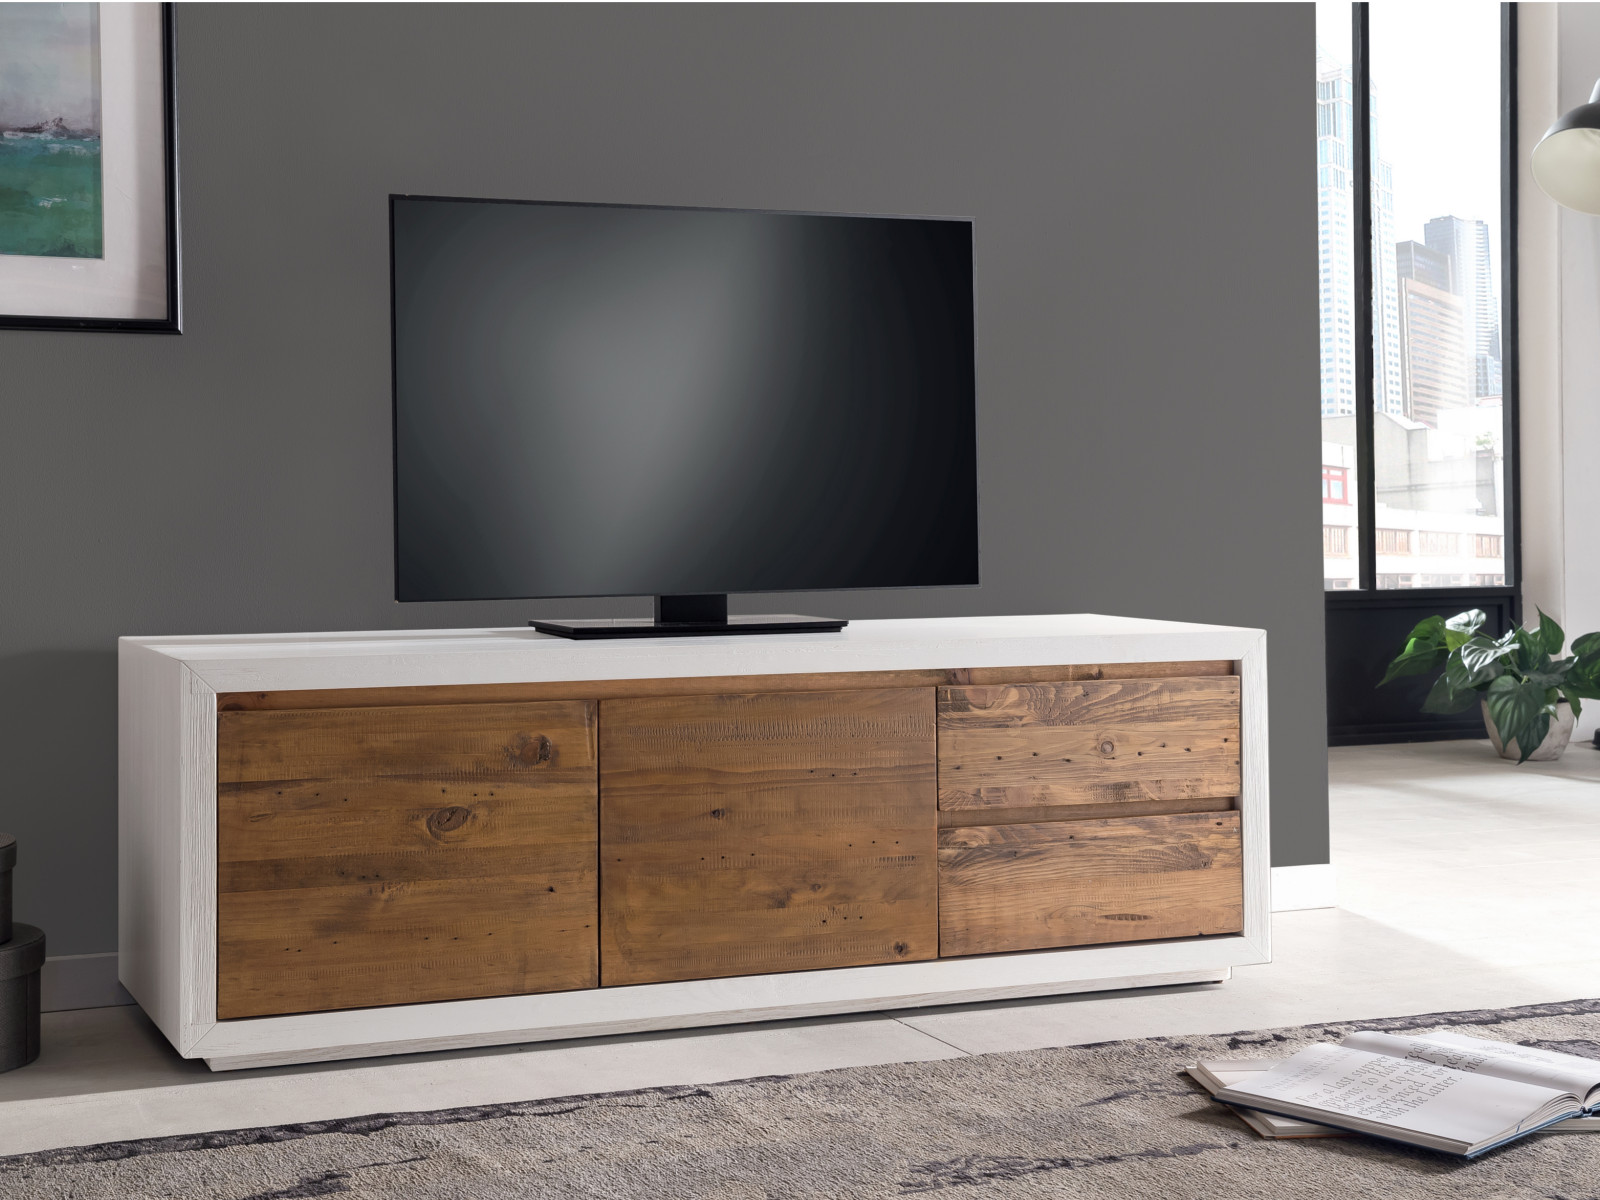 tv bank burnham 150cm wei pinie rustikal lowboard tv m bel wohnzimmerm bel ebay. Black Bedroom Furniture Sets. Home Design Ideas